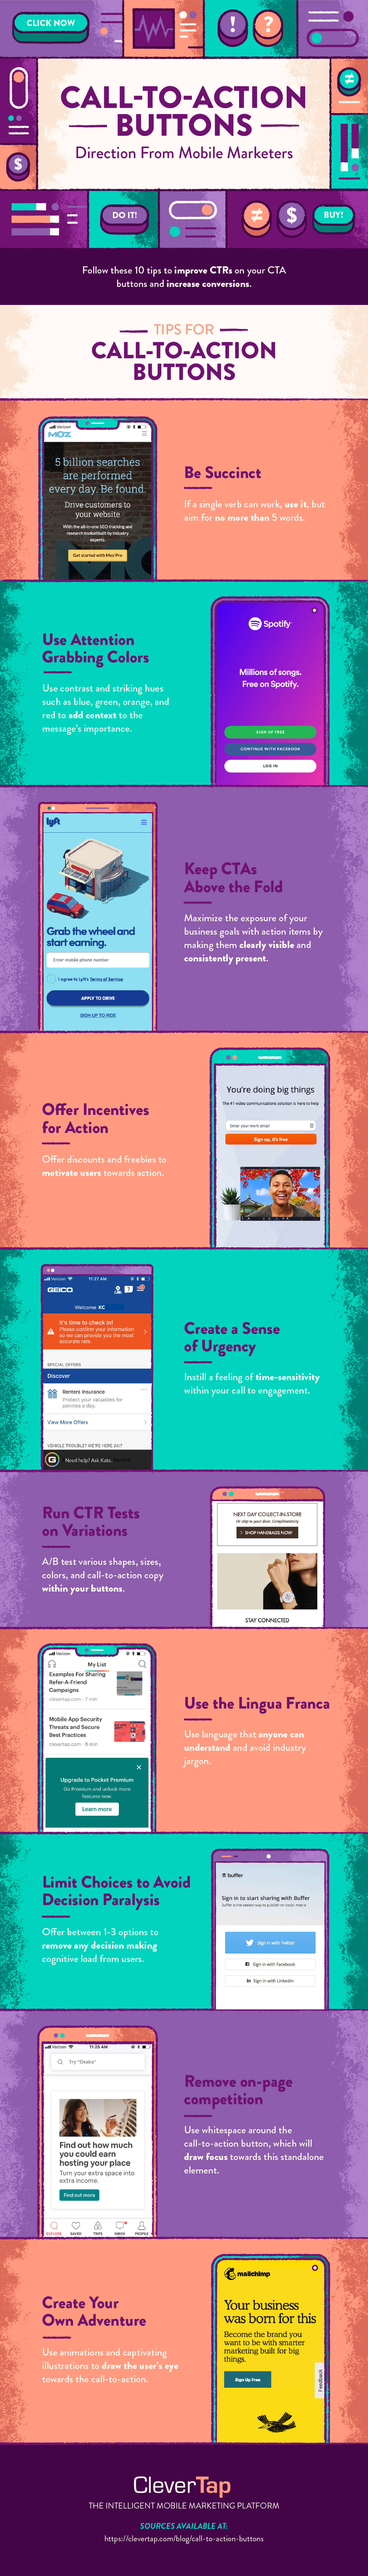 call to action button examples from real companies with tips